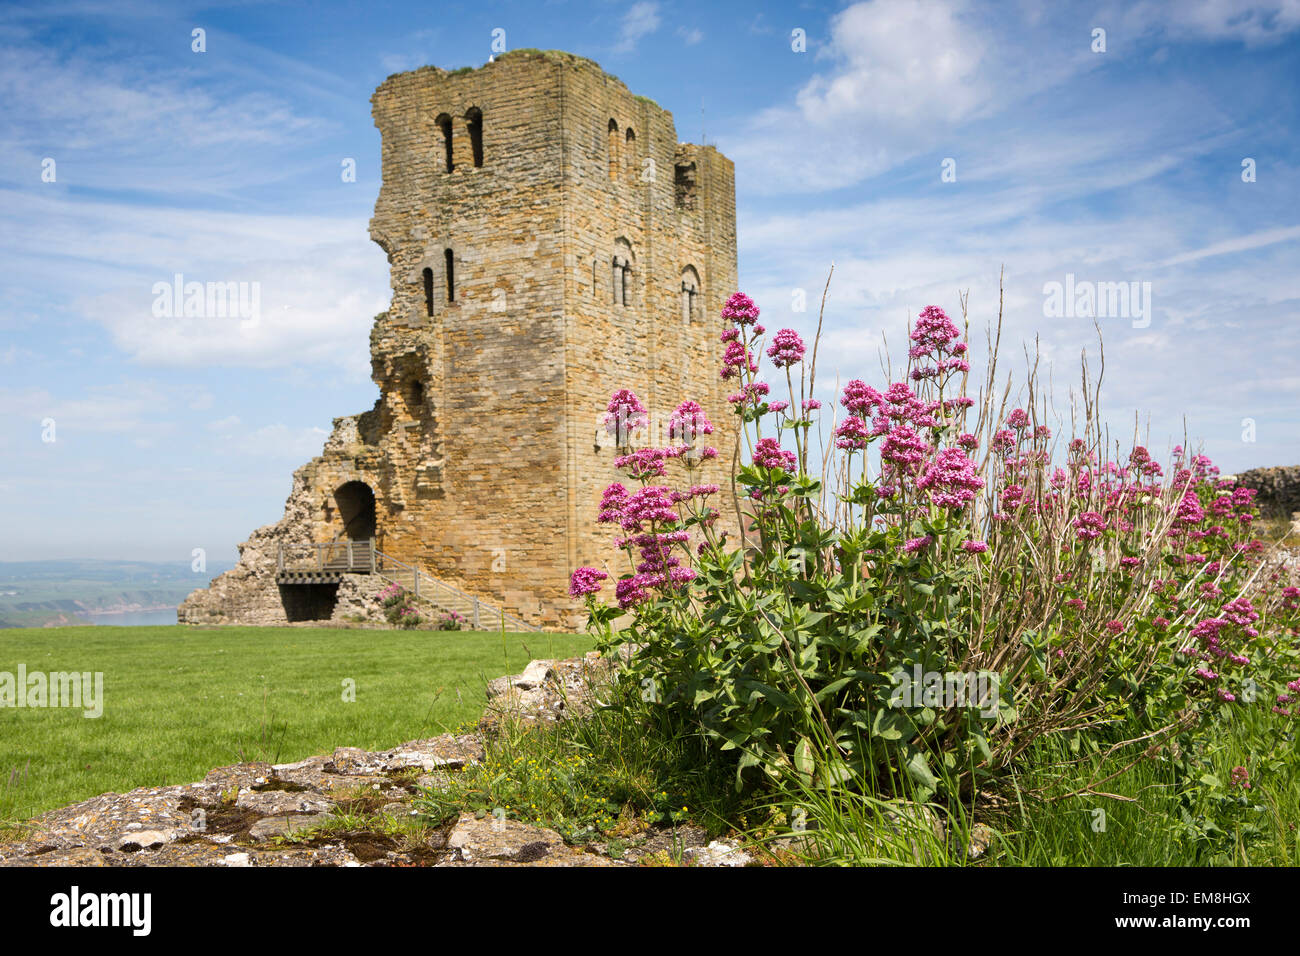 UK, England, Yorkshire, Scarborough, Castle Keep - Stock Image